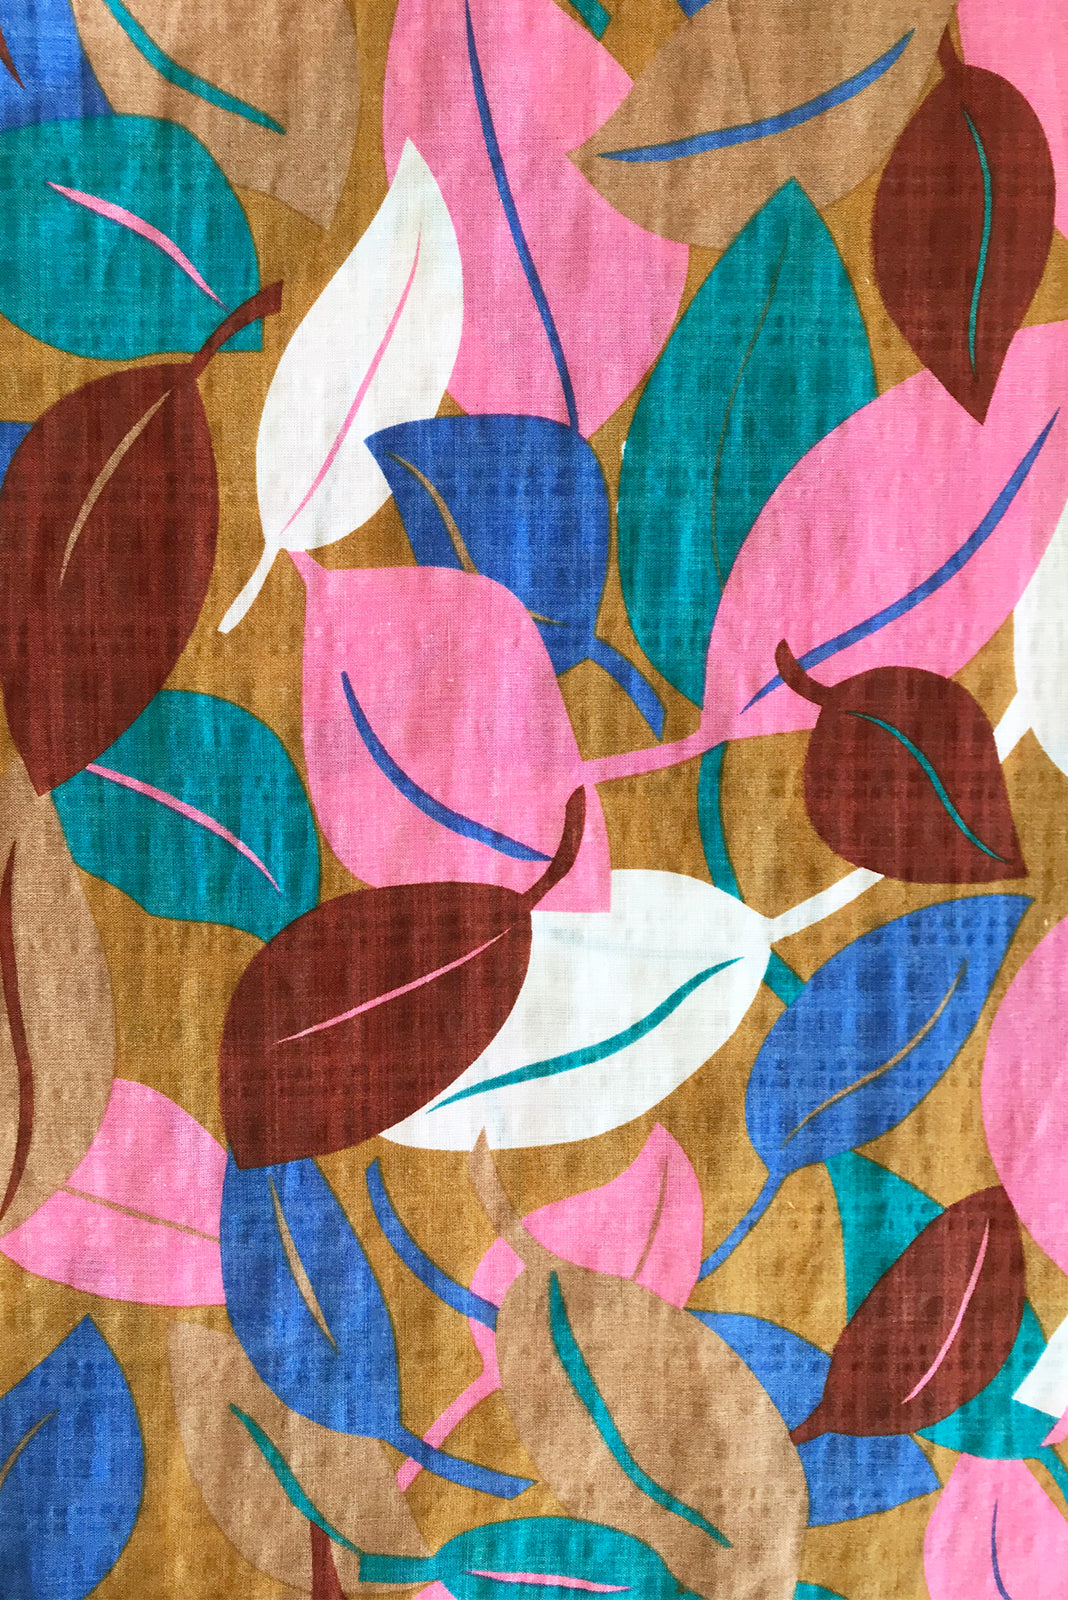 Fabric swatch of Jina Magic Leaf Maxi Dress featuring 70% cotton, 30% rayon in caramel base with white, pink, blue, teal and chocolate leaf print.